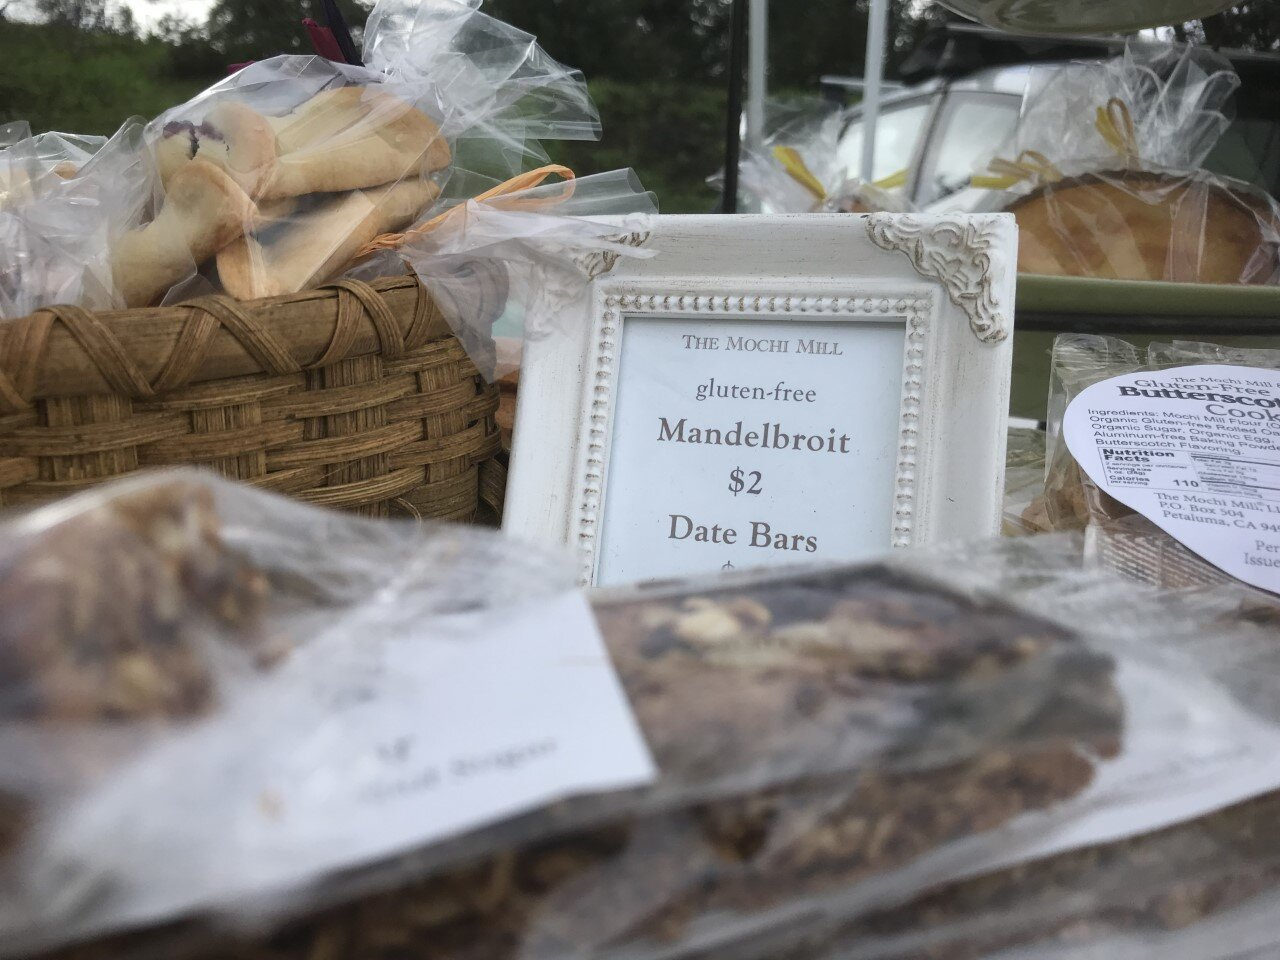 delicious cakes, pastries, breads and crackers